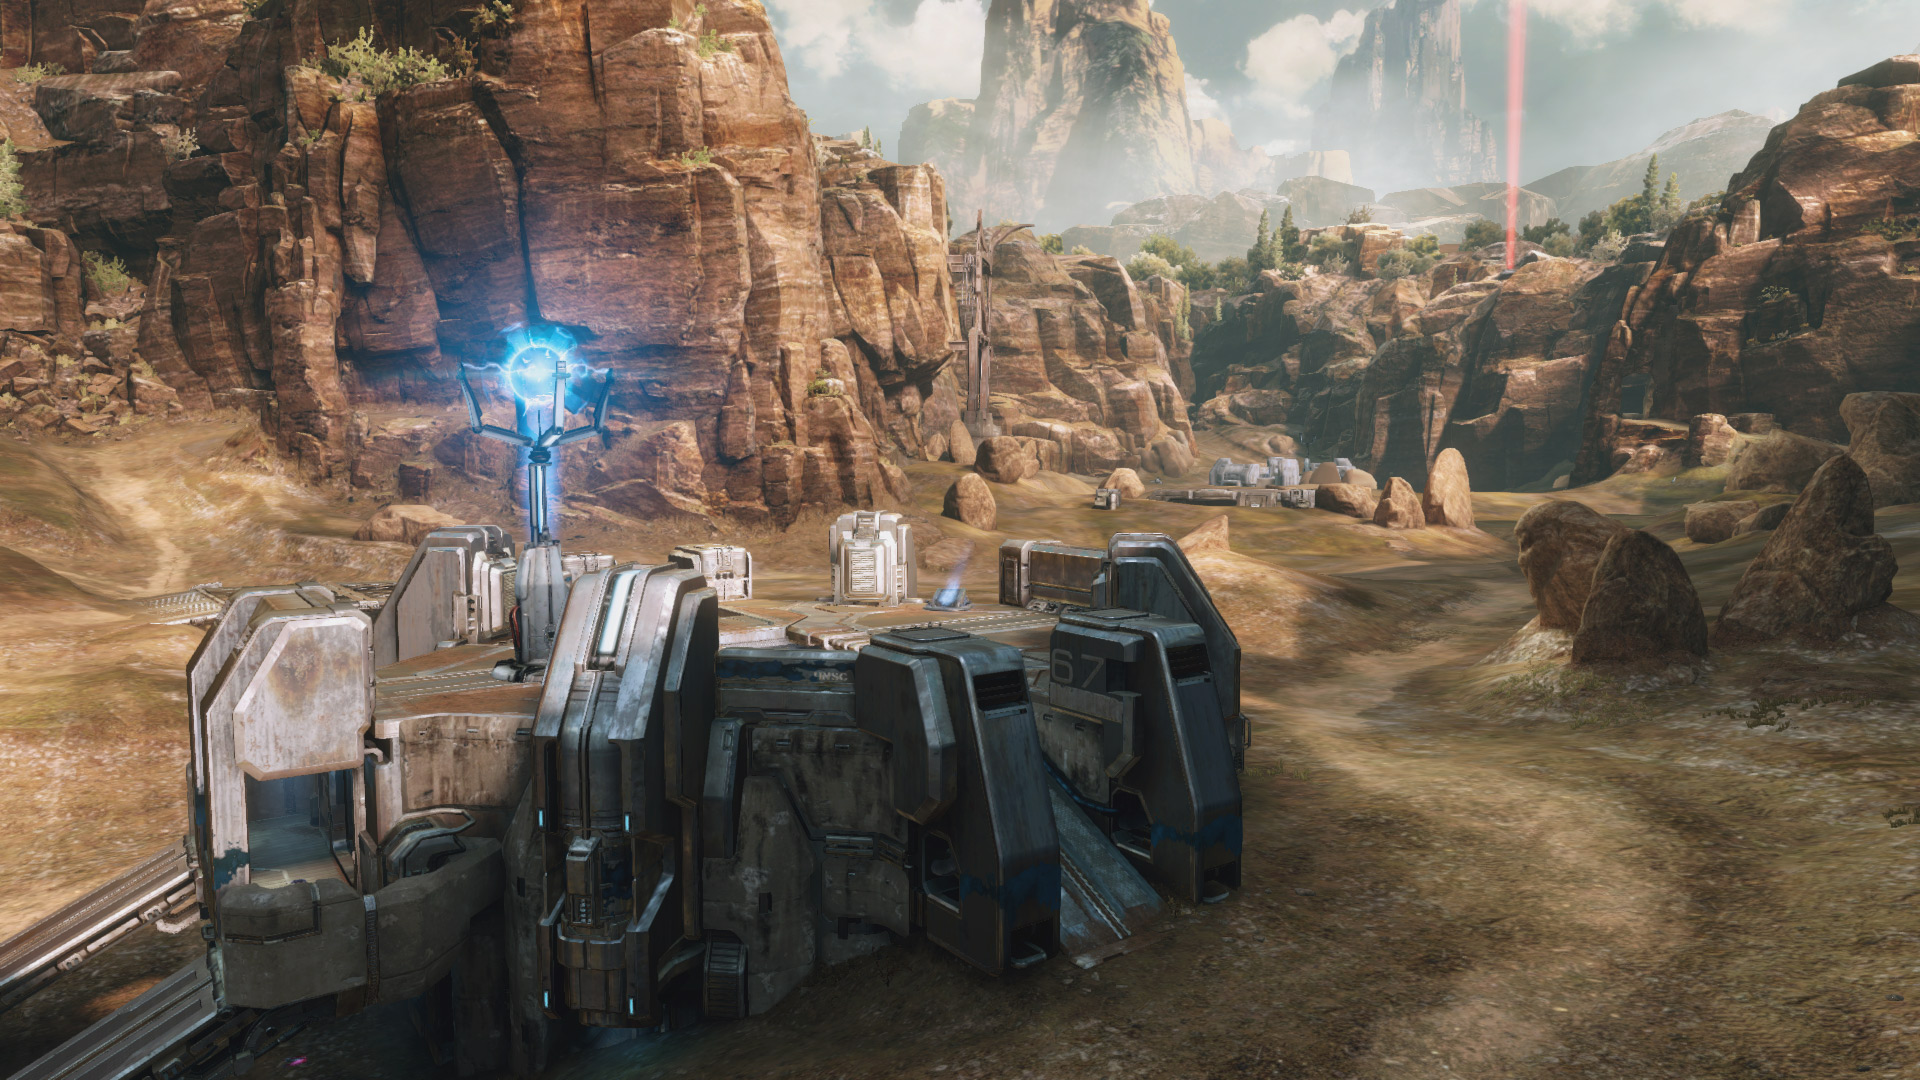 Halo: The Master Chief Collection Review: Remastered Chief | Shacknews